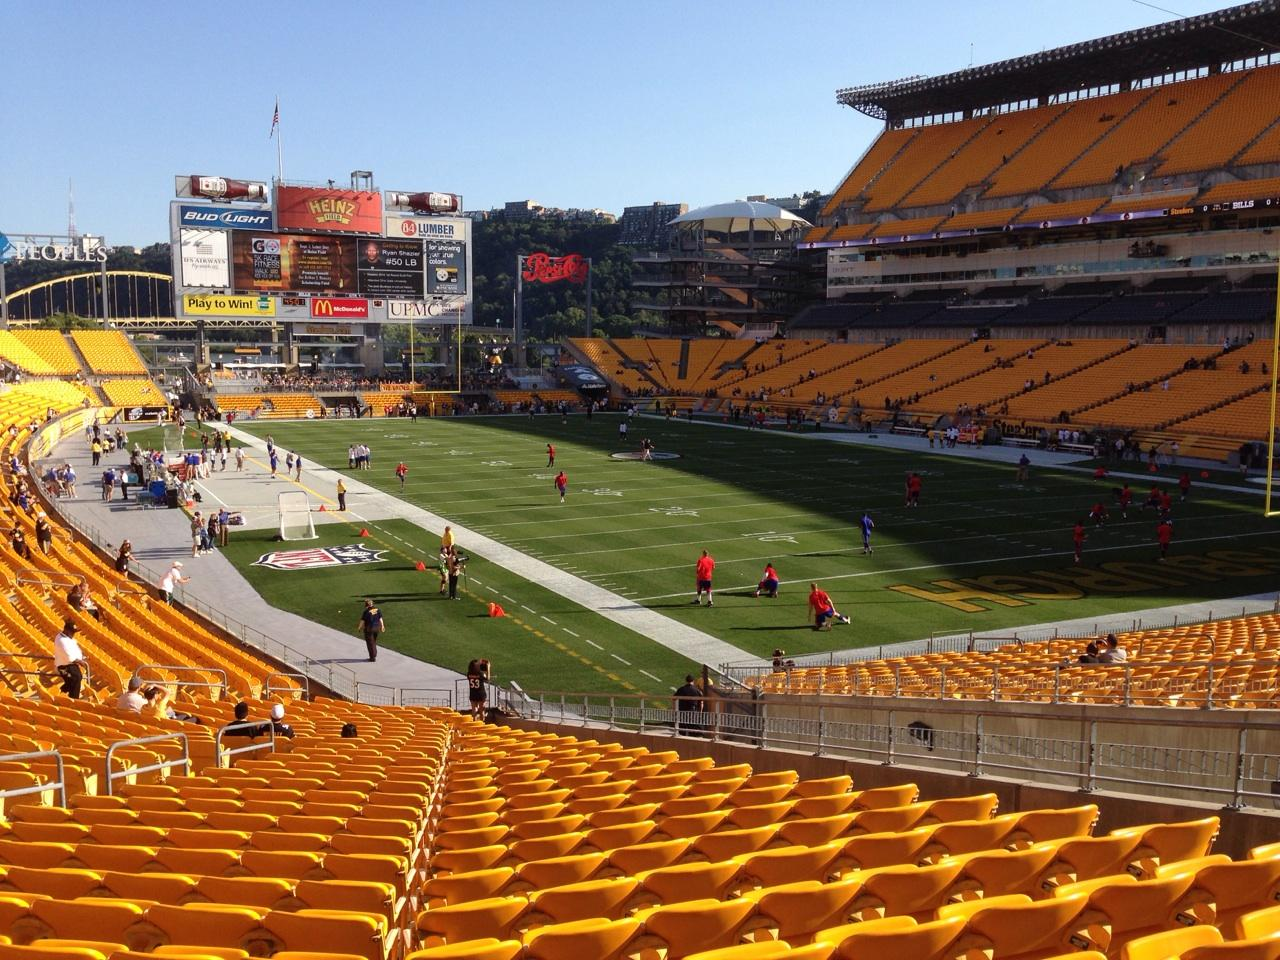 Heinz Field Section 119 - RateYourSeats.com